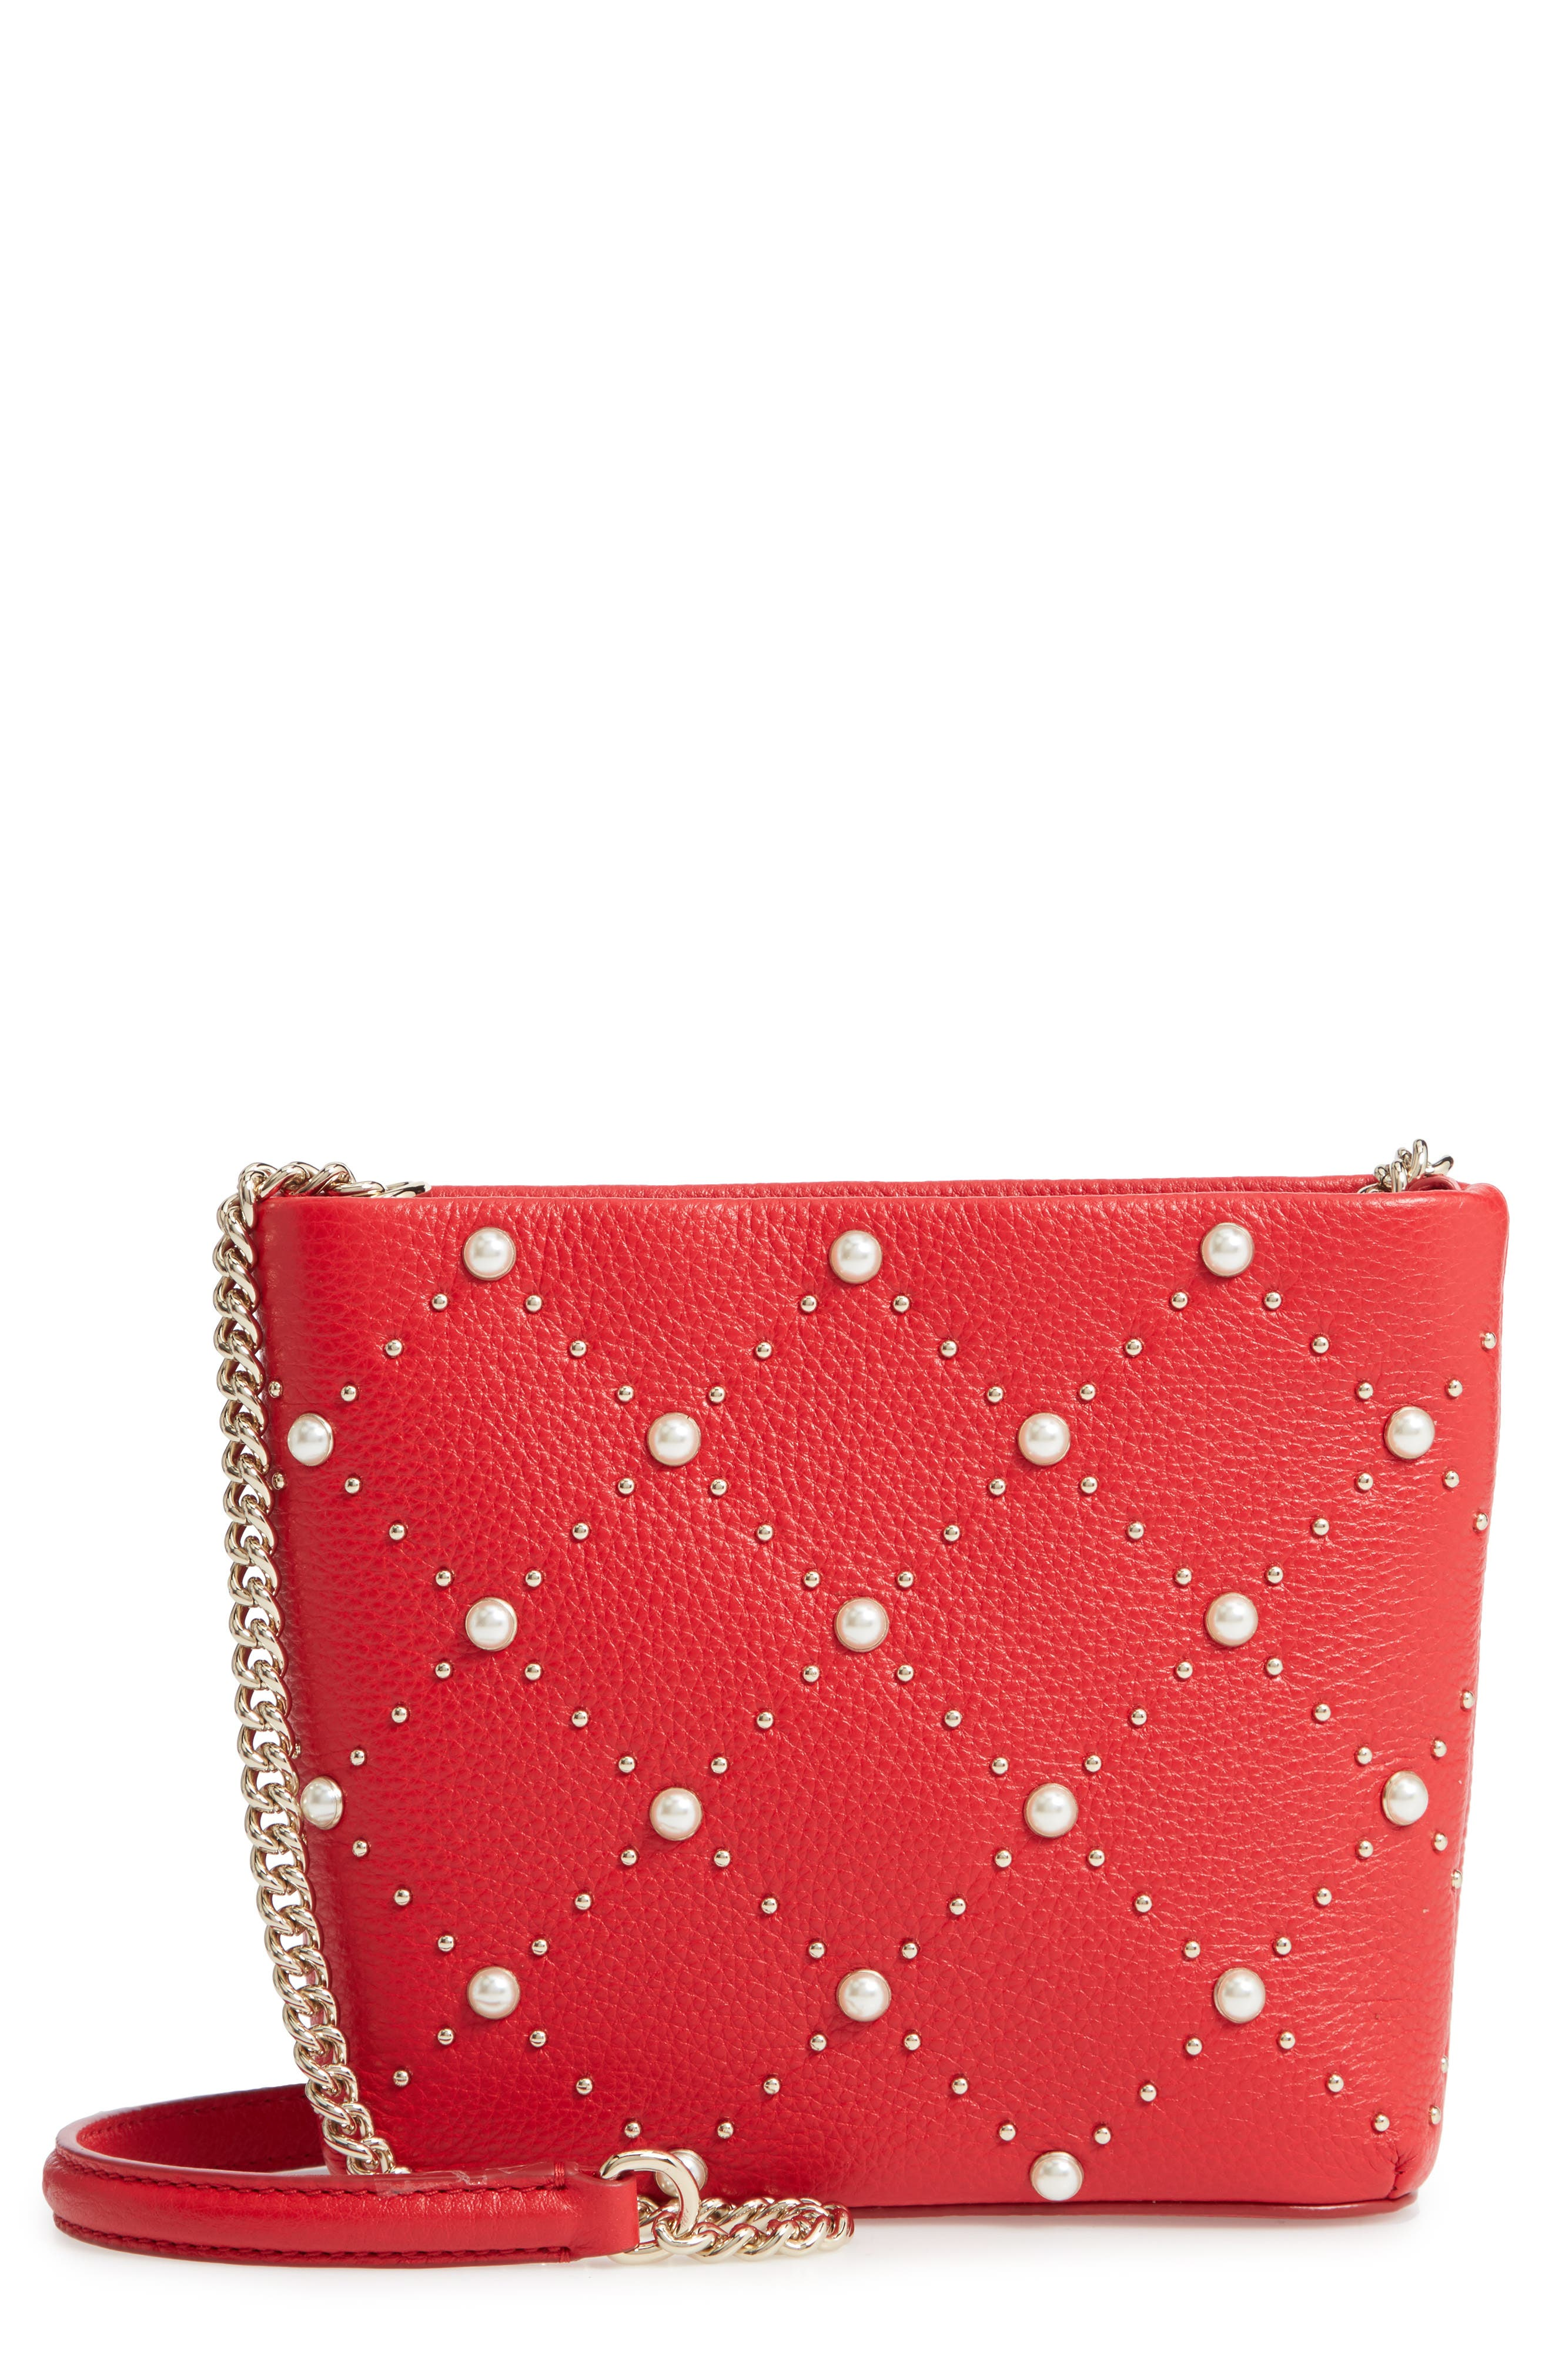 Hayes Street - Ellery Imitation Pearl Studded Leather Crossbody Bag - Red in Royal Red